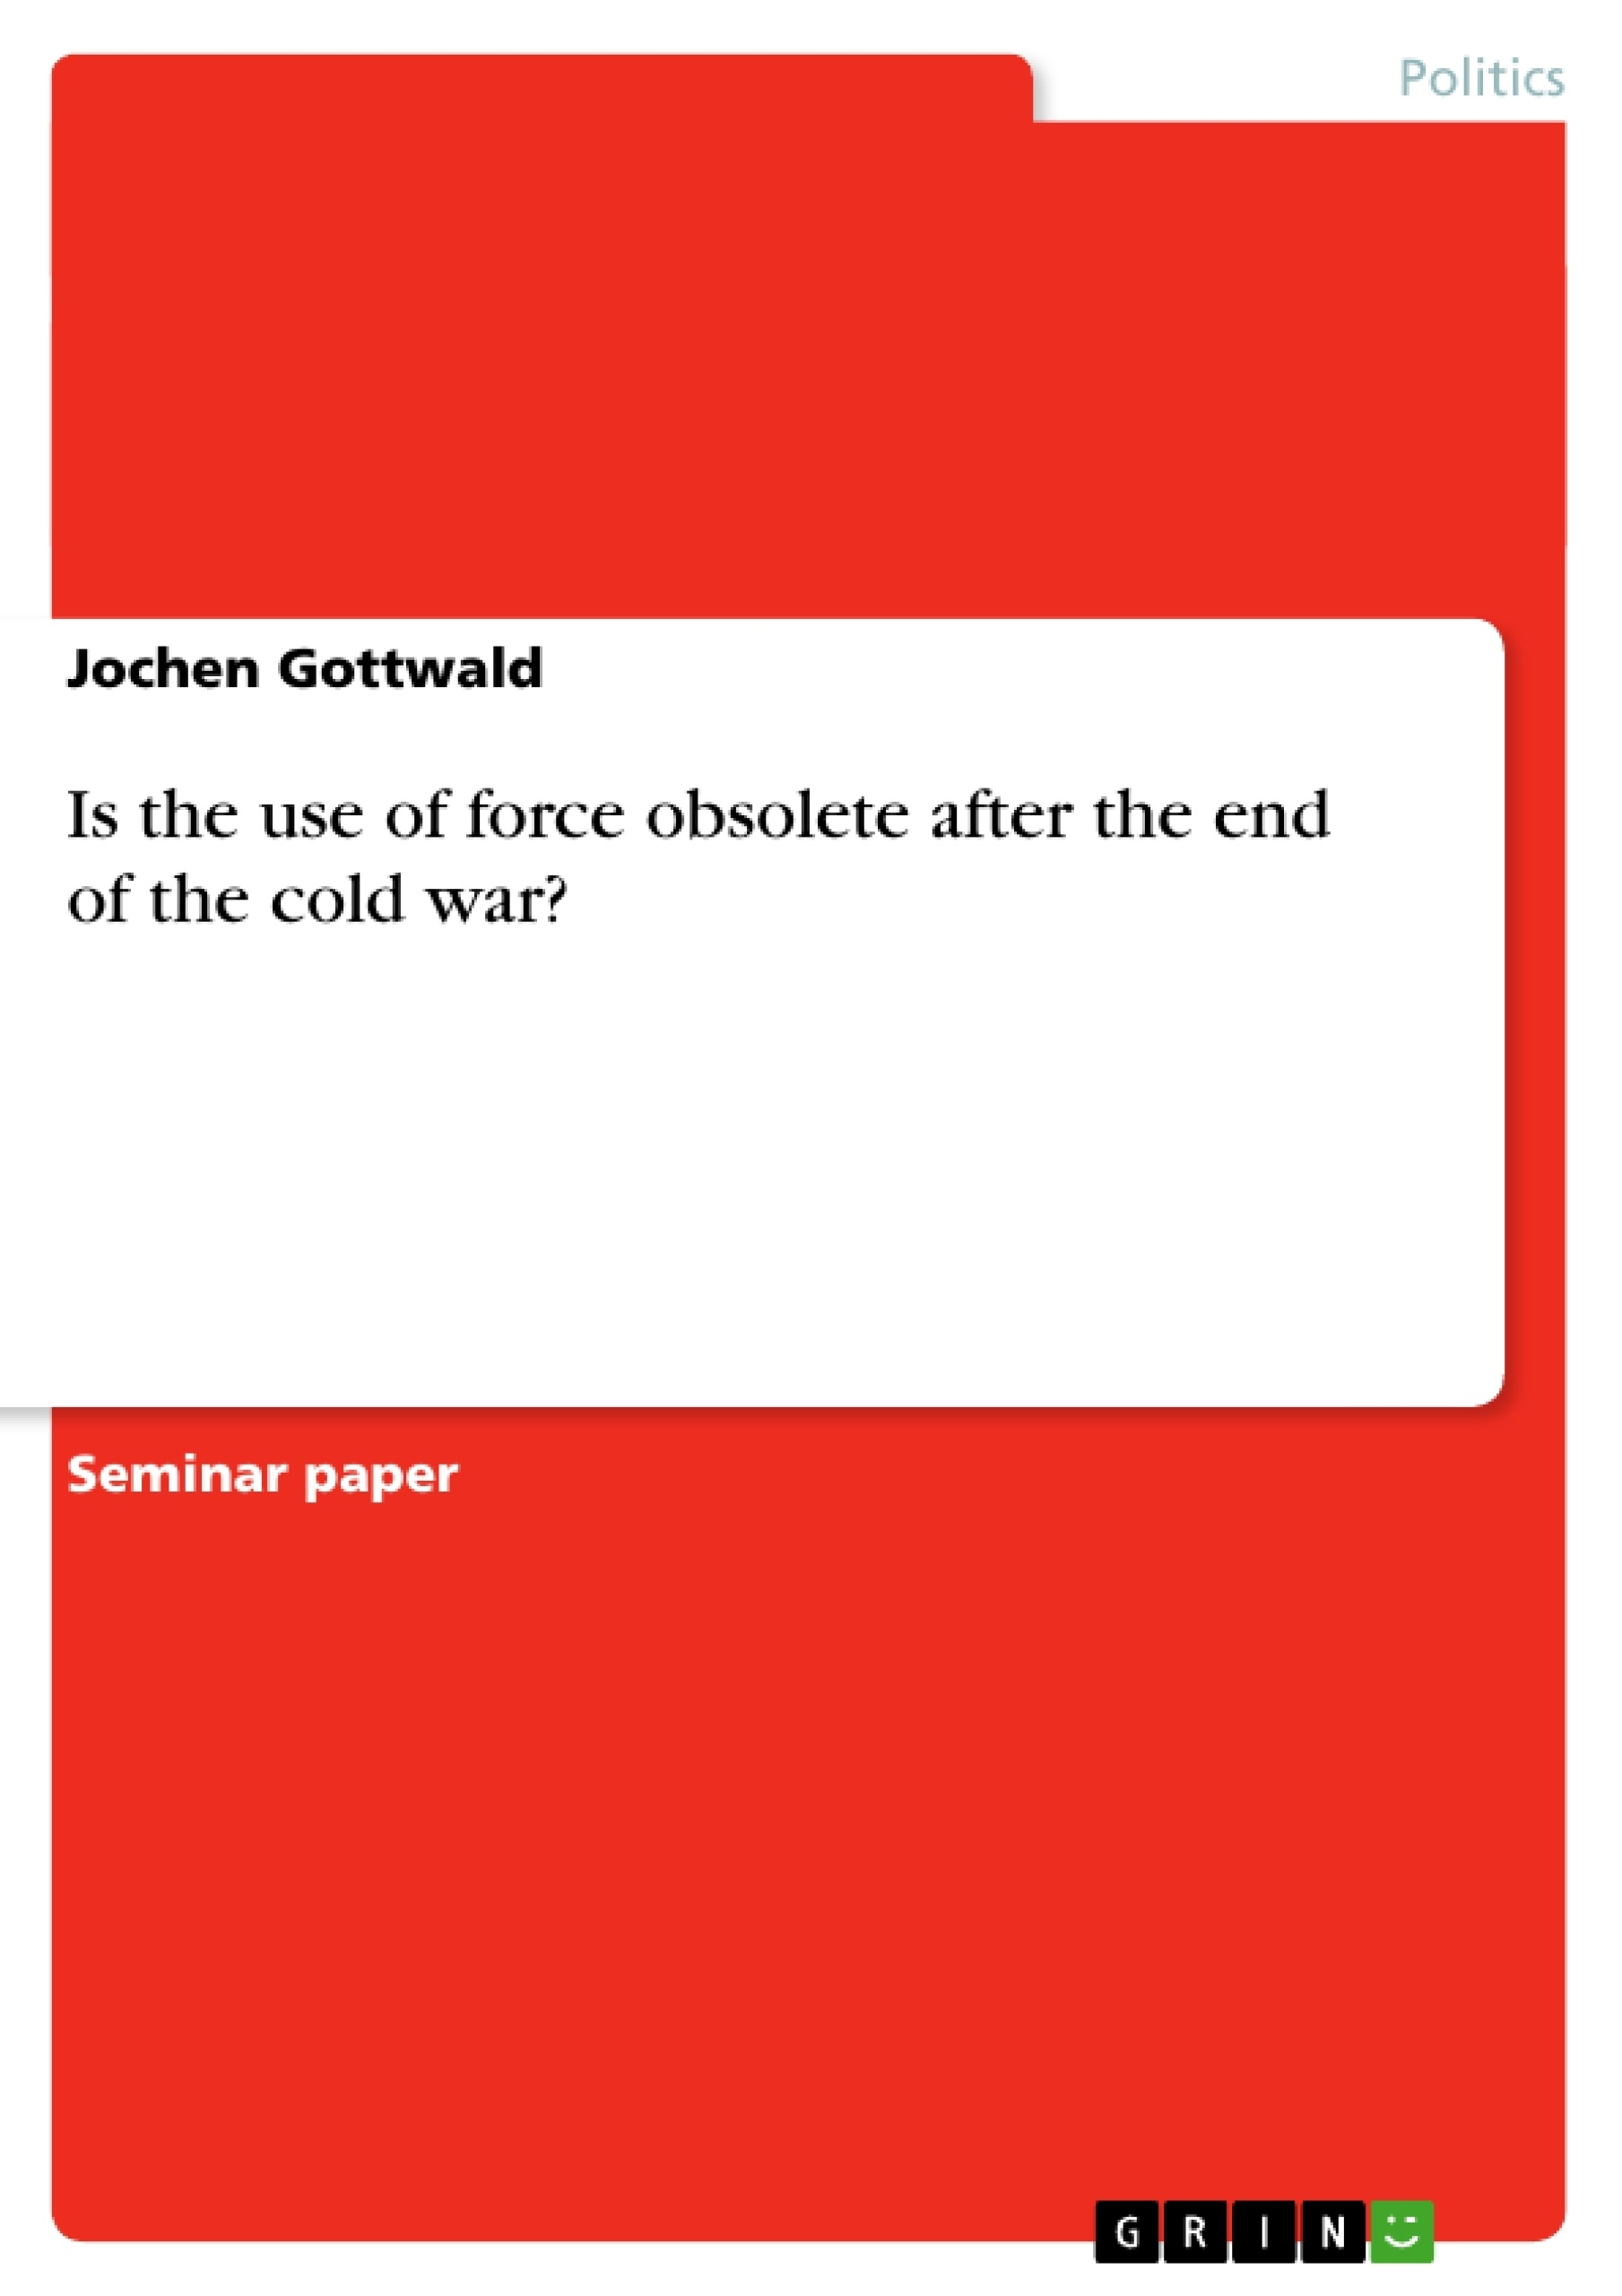 Title: Is the use of force obsolete after the end of the cold war?